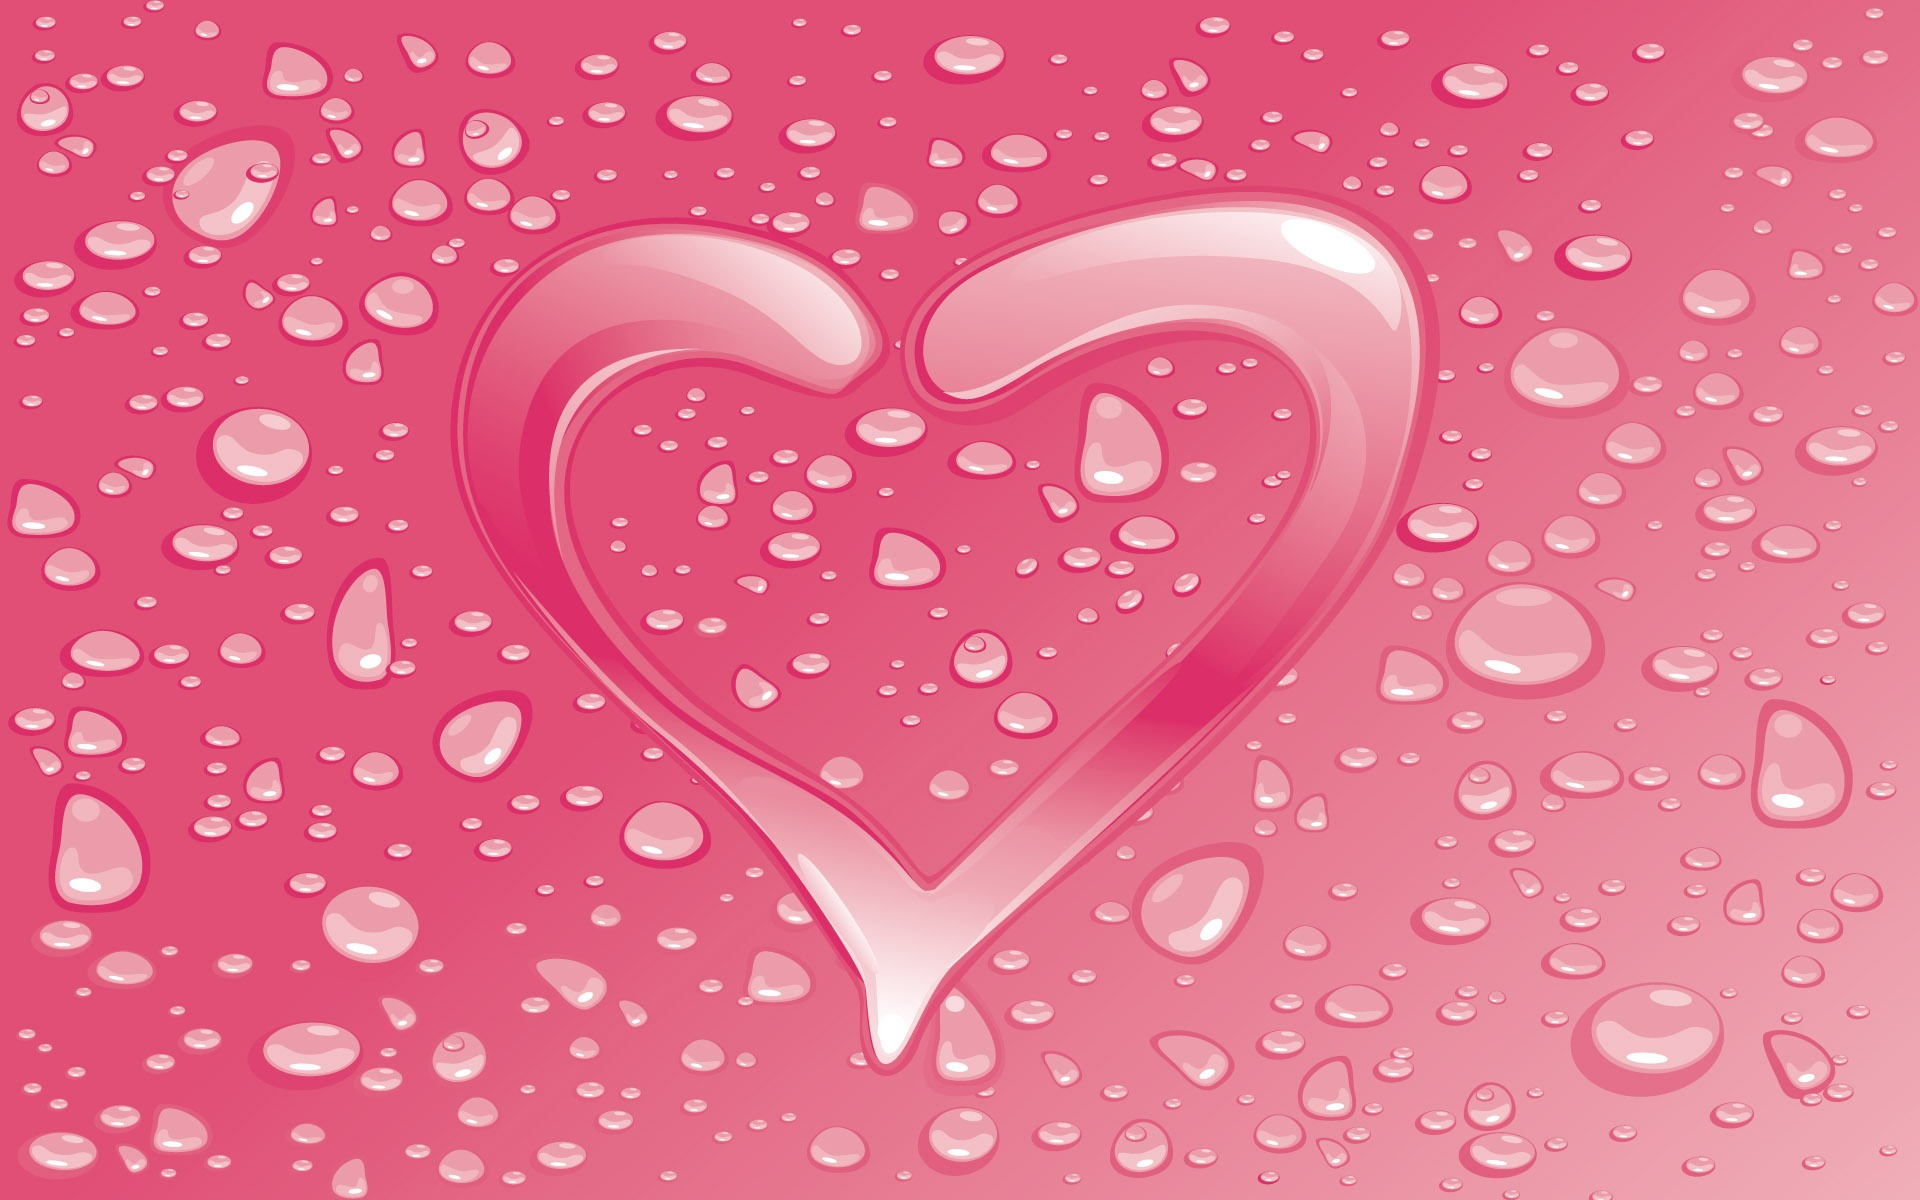 Related Pictures valentine s heart background wallpaper 1920x1200